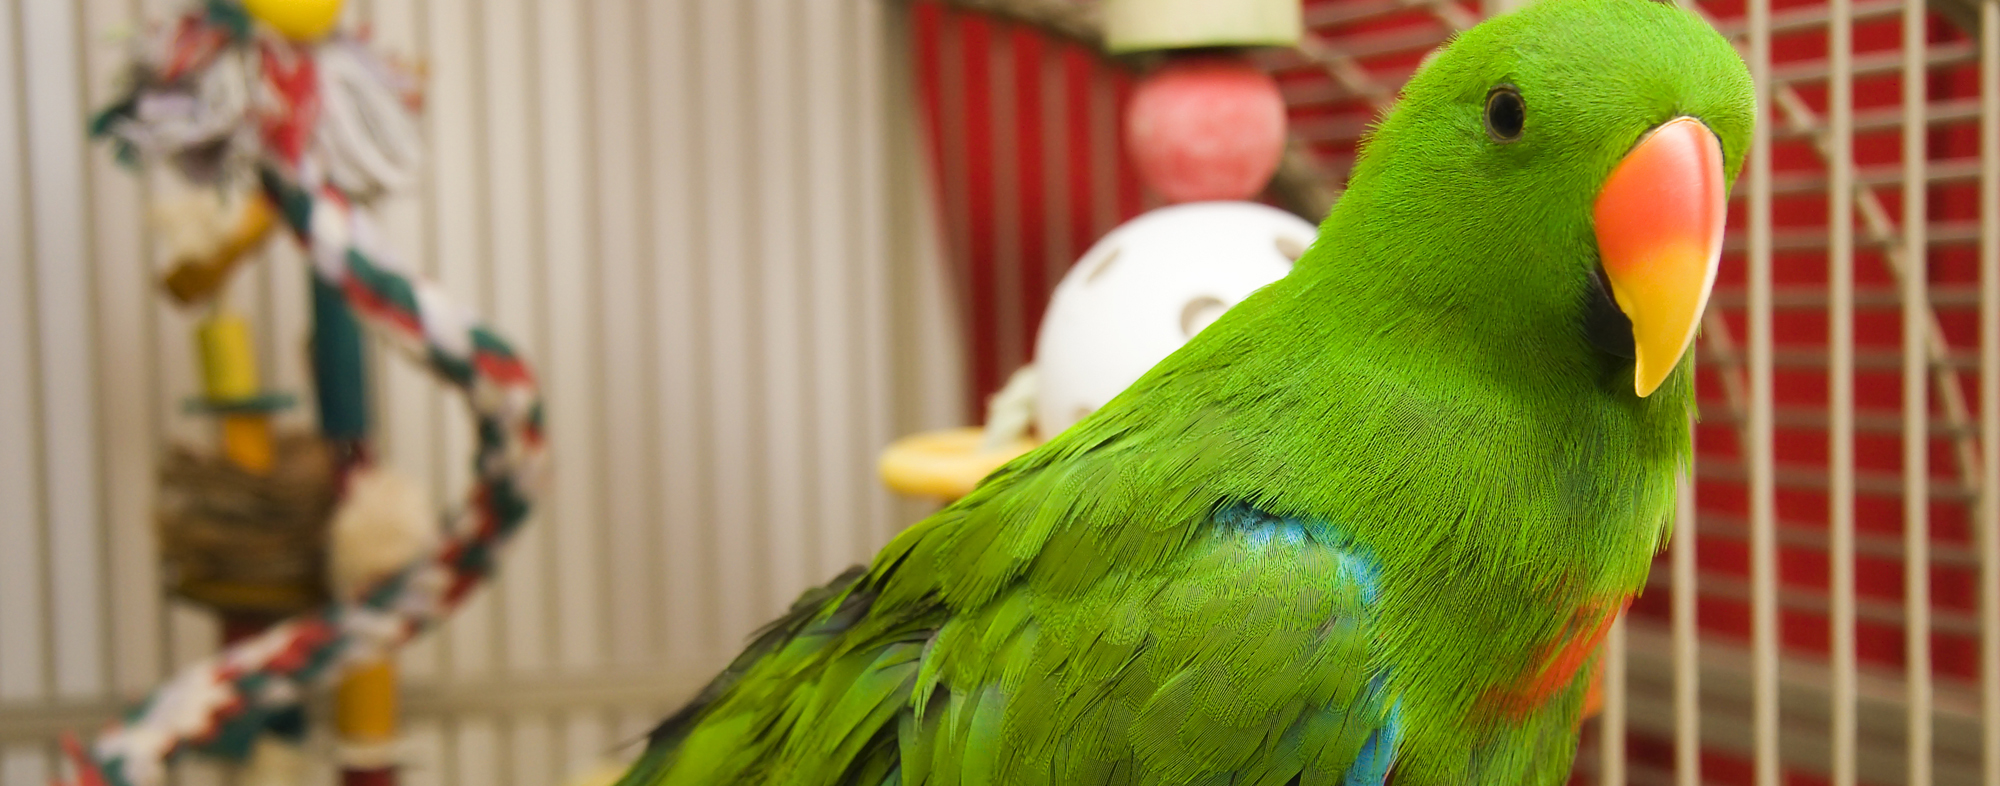 A vibrantly green pet parrot, gazing from inside its cage